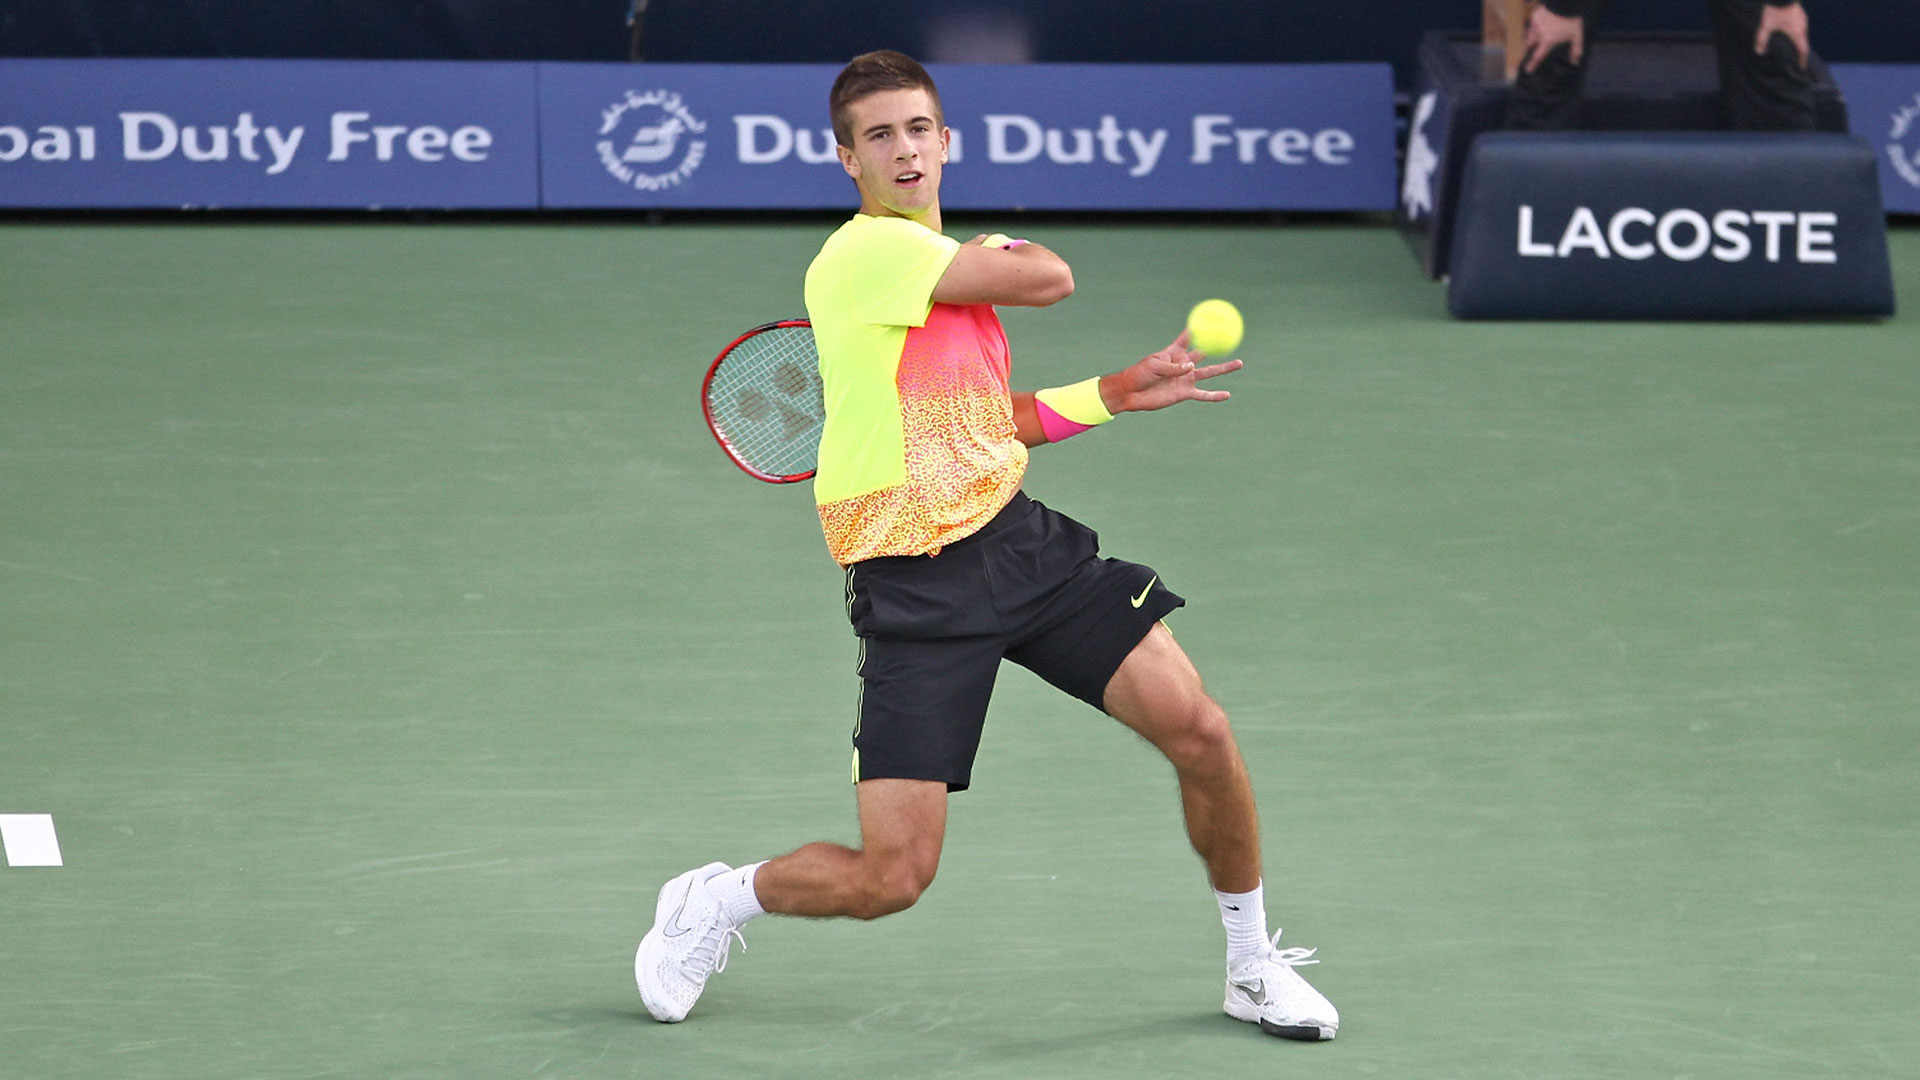 borna coric returns to roger federer dubai tennis open 2015